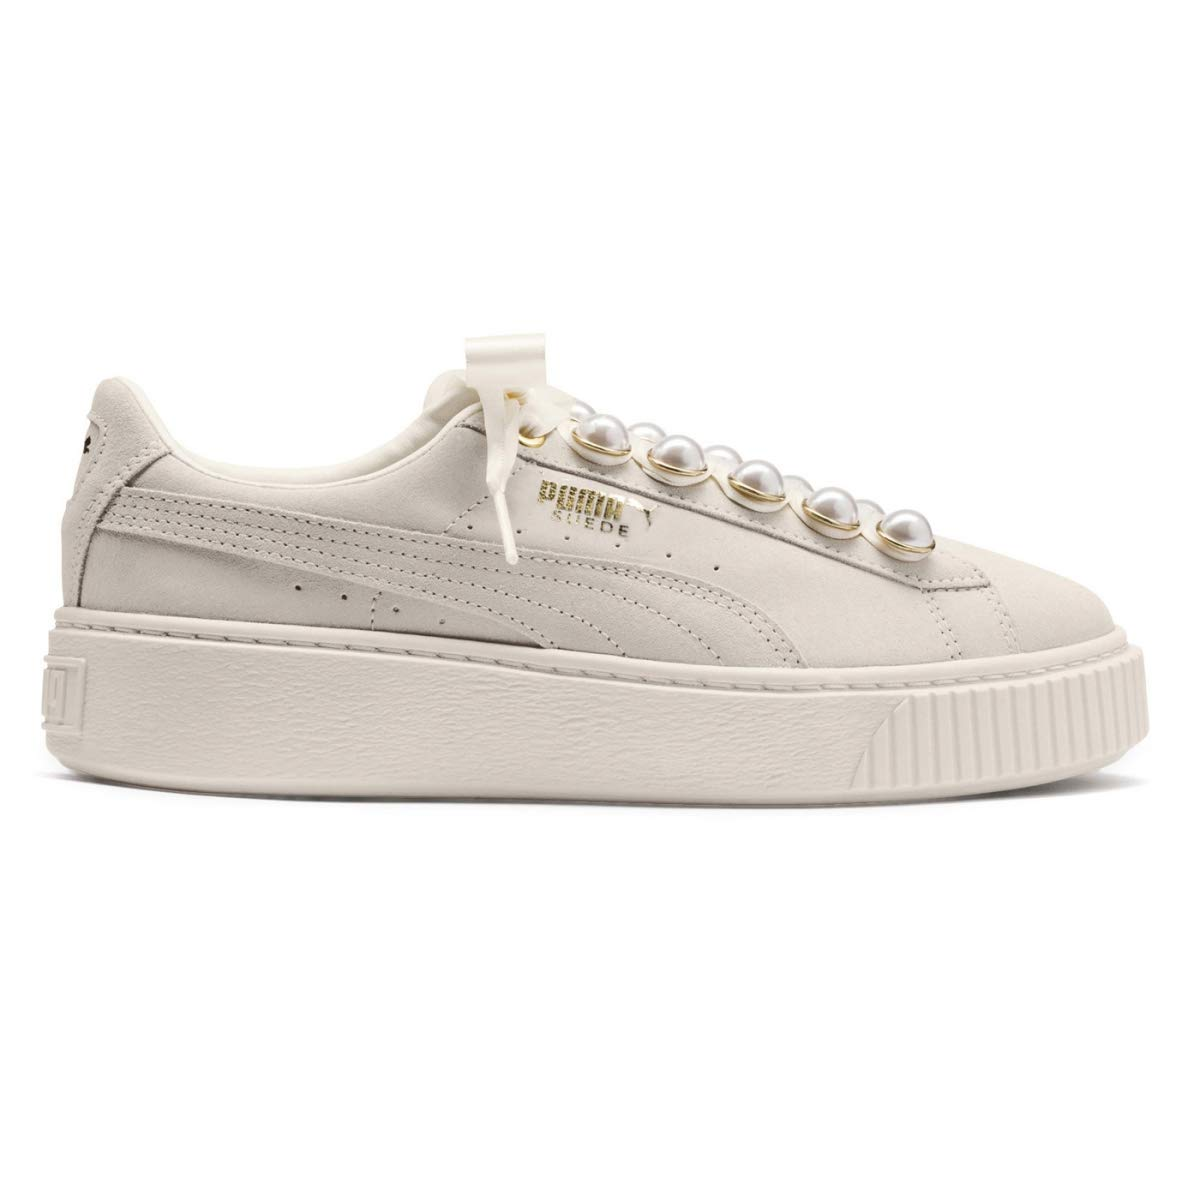 cheap for discount 762a3 11d94 Puma Suede Platform Bling Trainers Natural: Amazon.co.uk ...